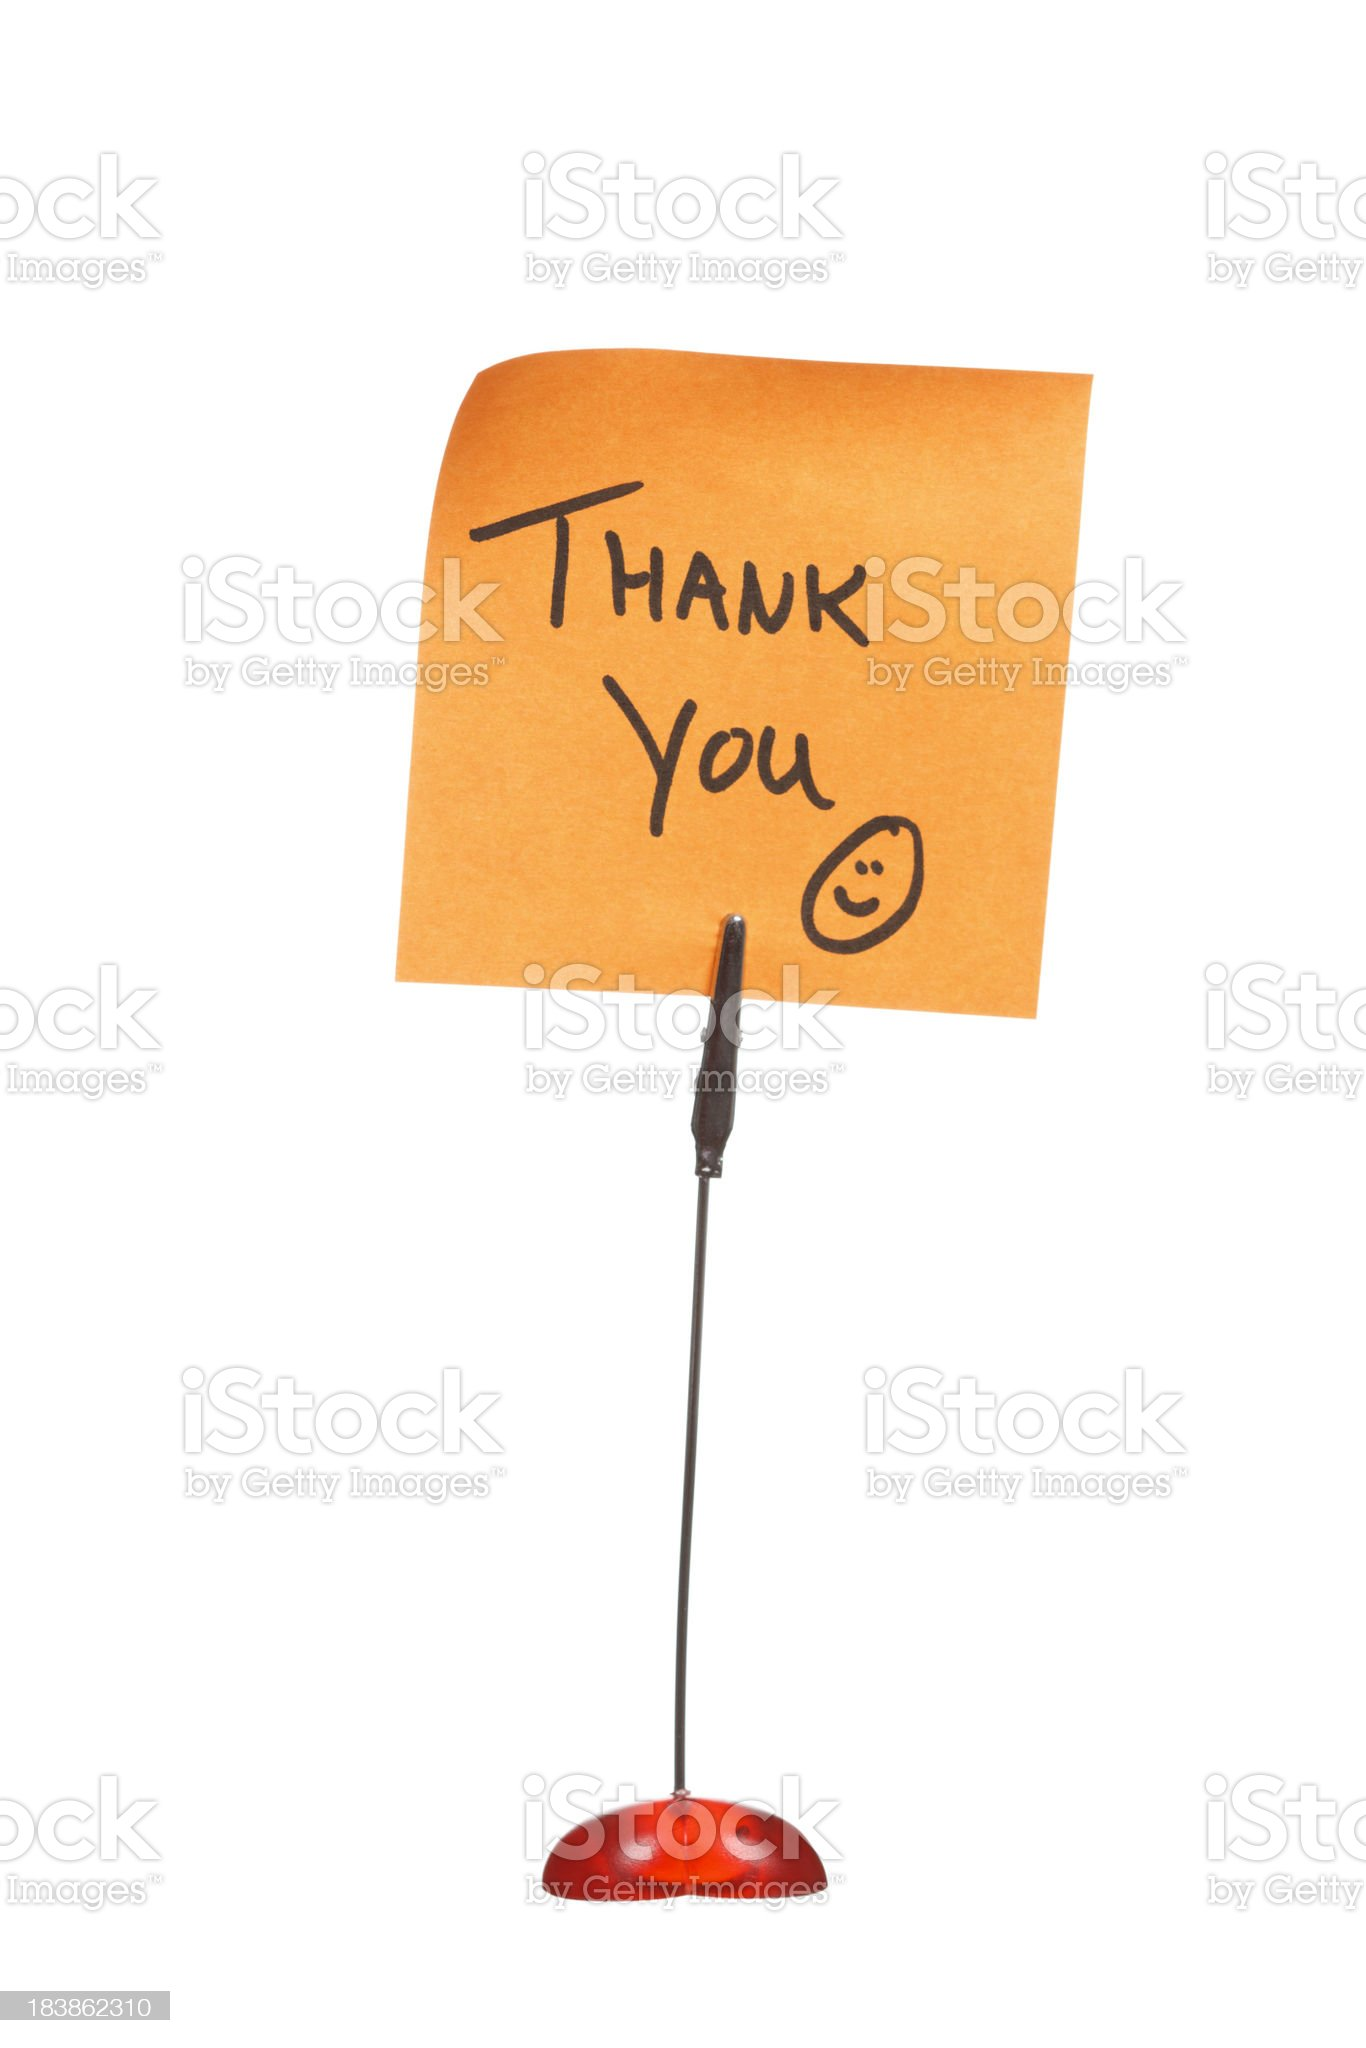 Thank You Note royalty-free stock photo